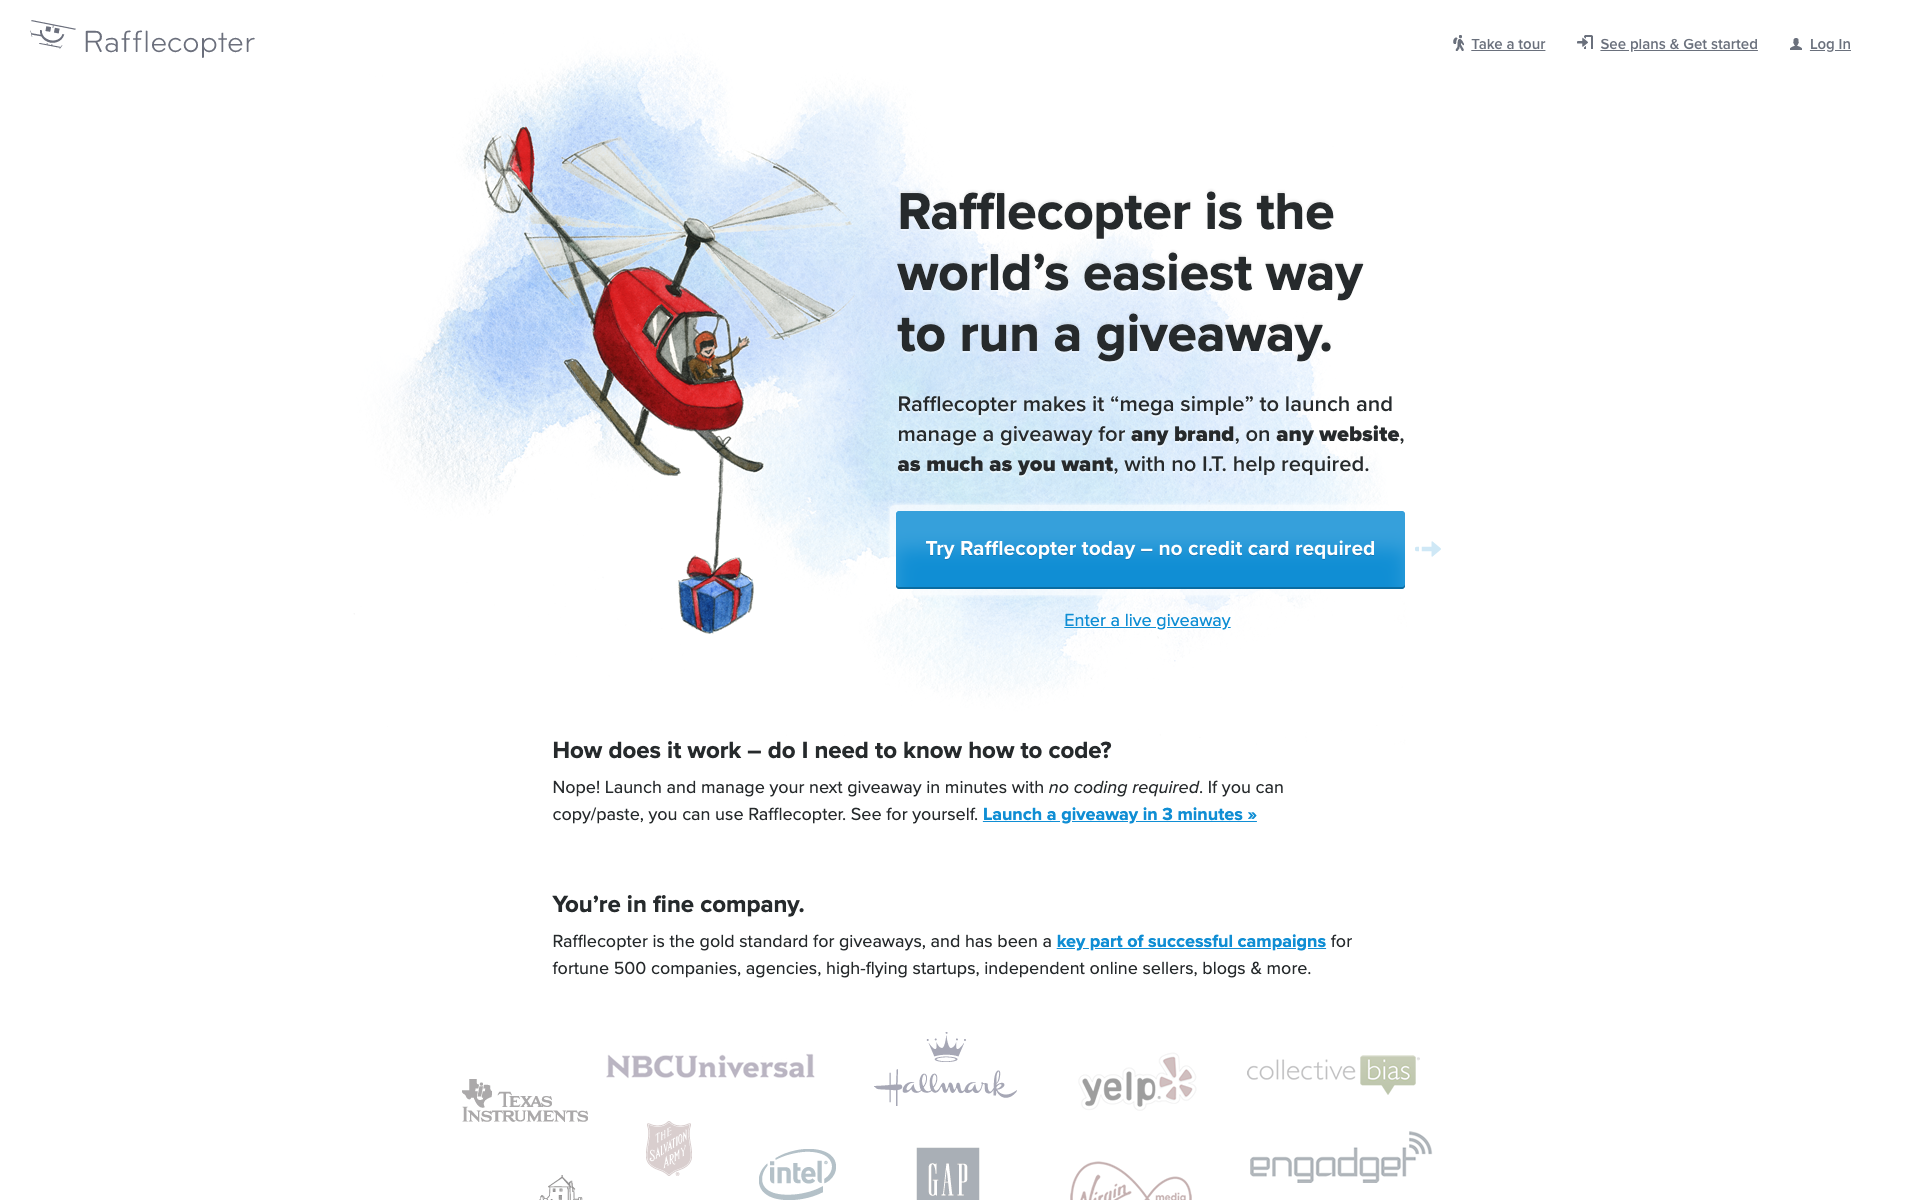 Rafflecopter website